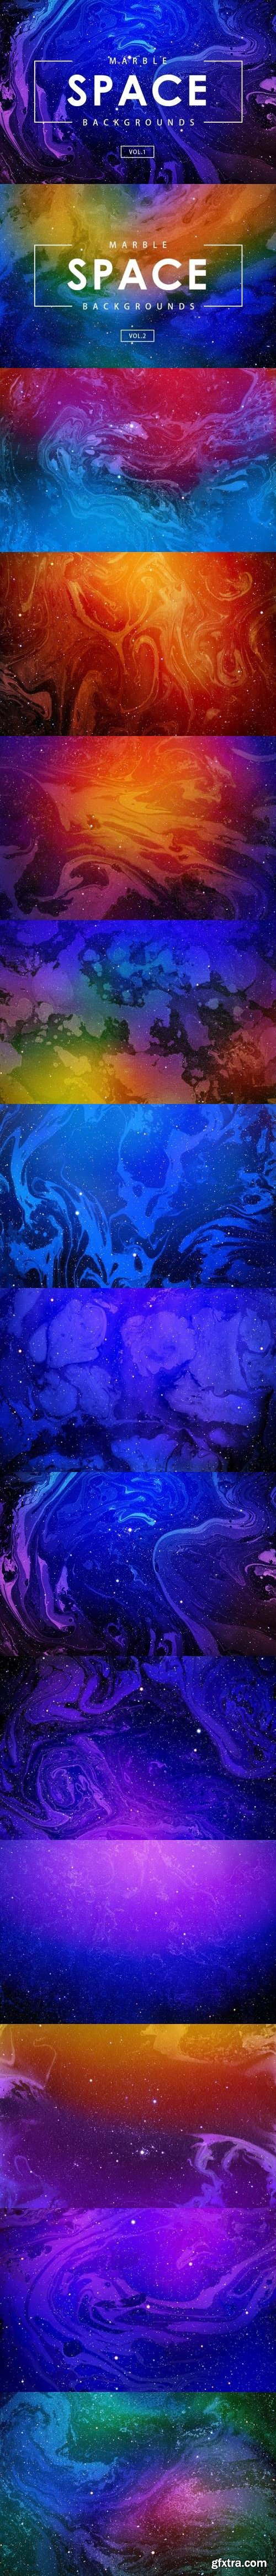 Space Marble Backgrounds Bundle